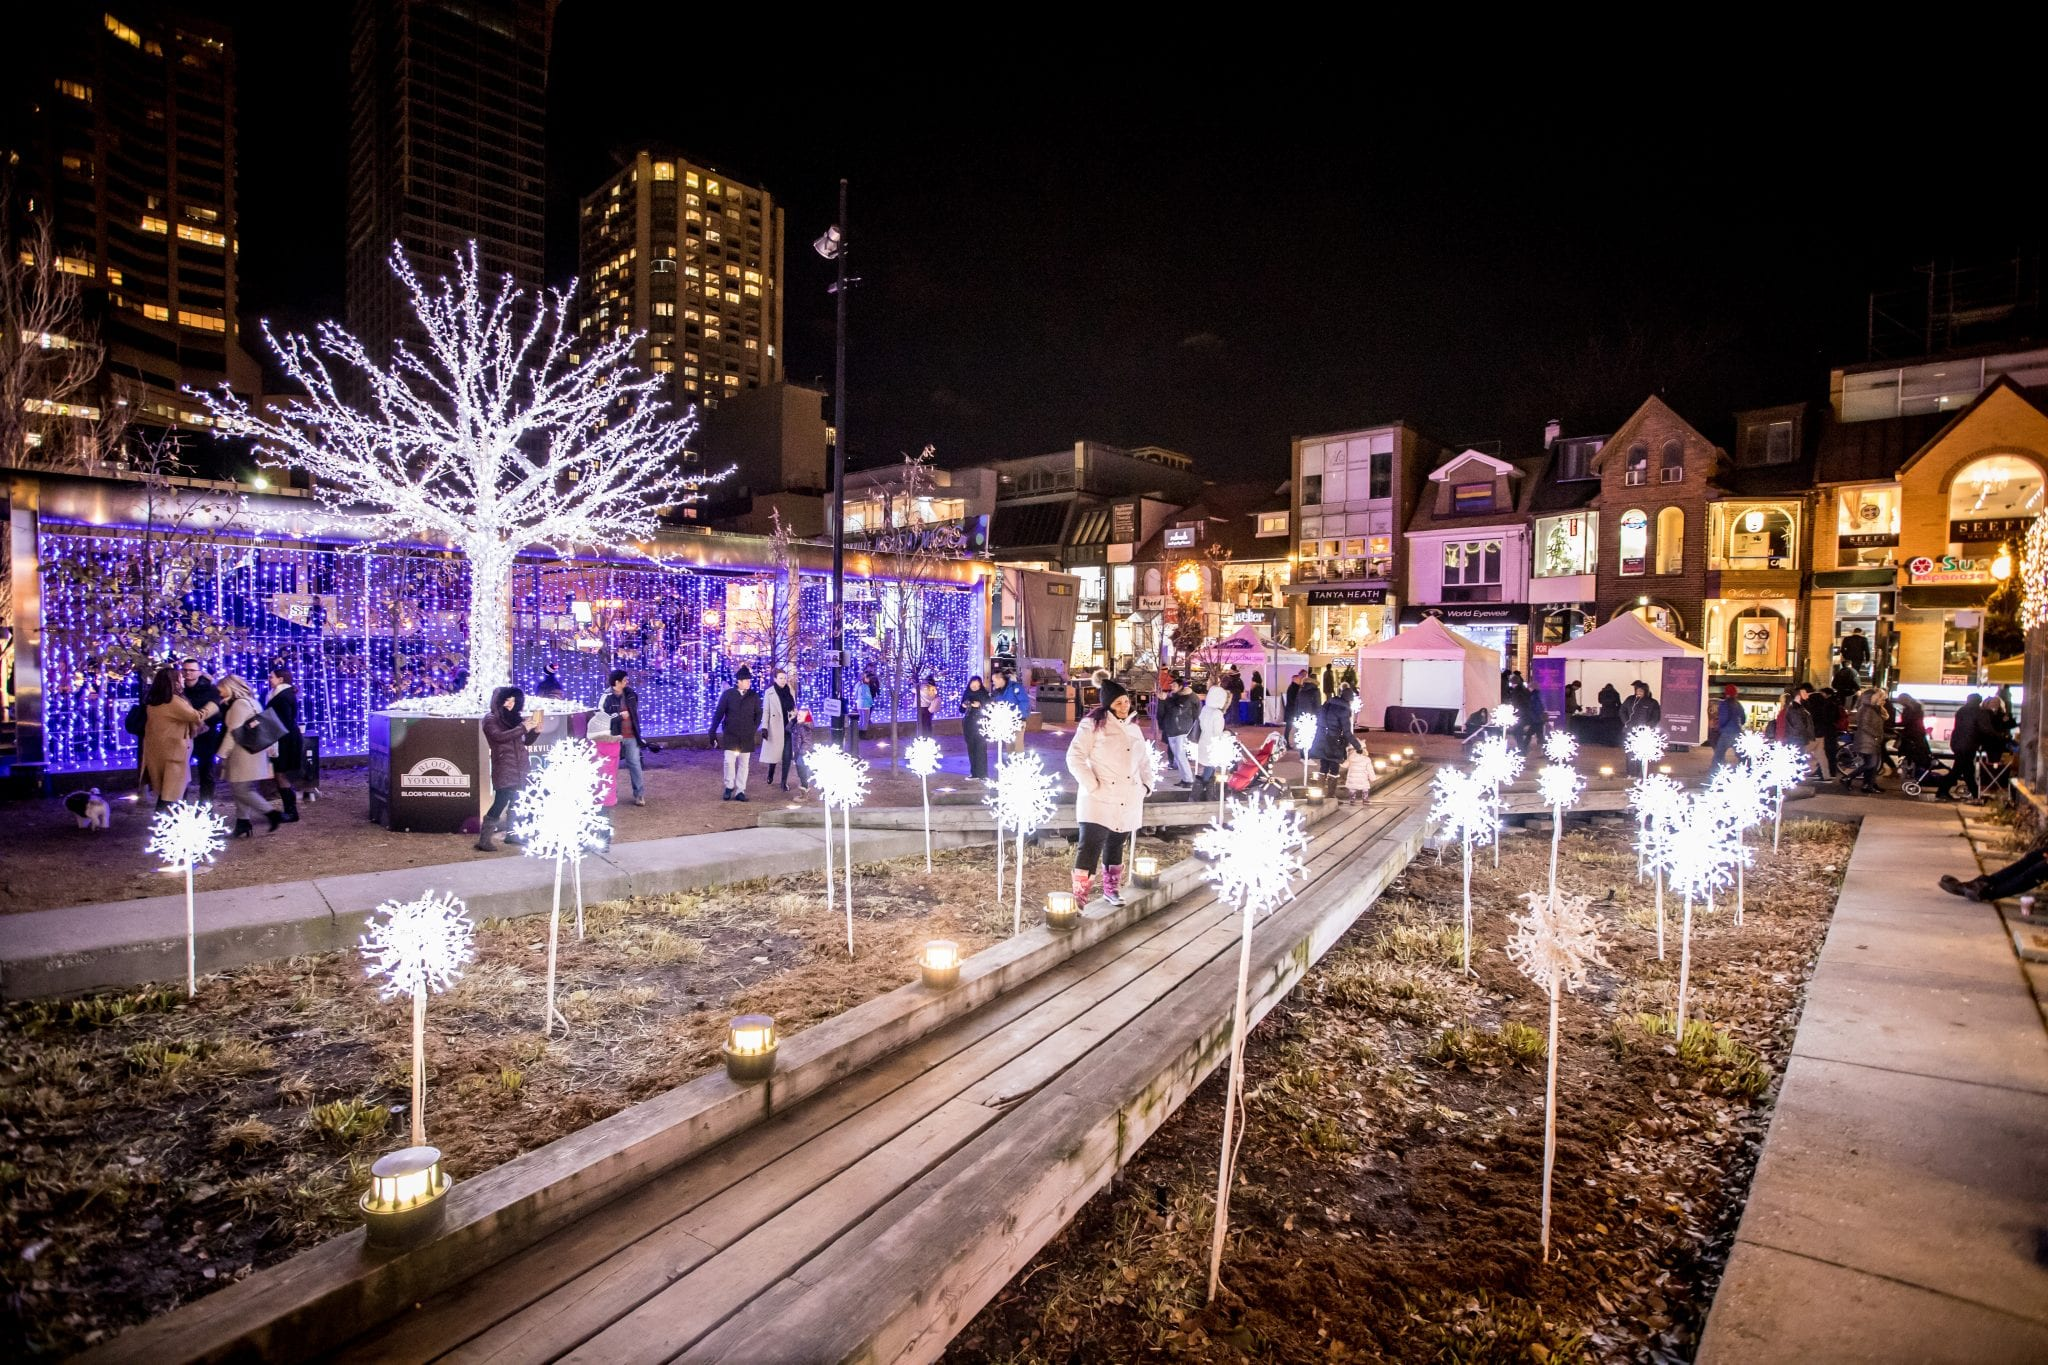 The Village of Yorkville Park Holiday Magic 2018 Lighting Display